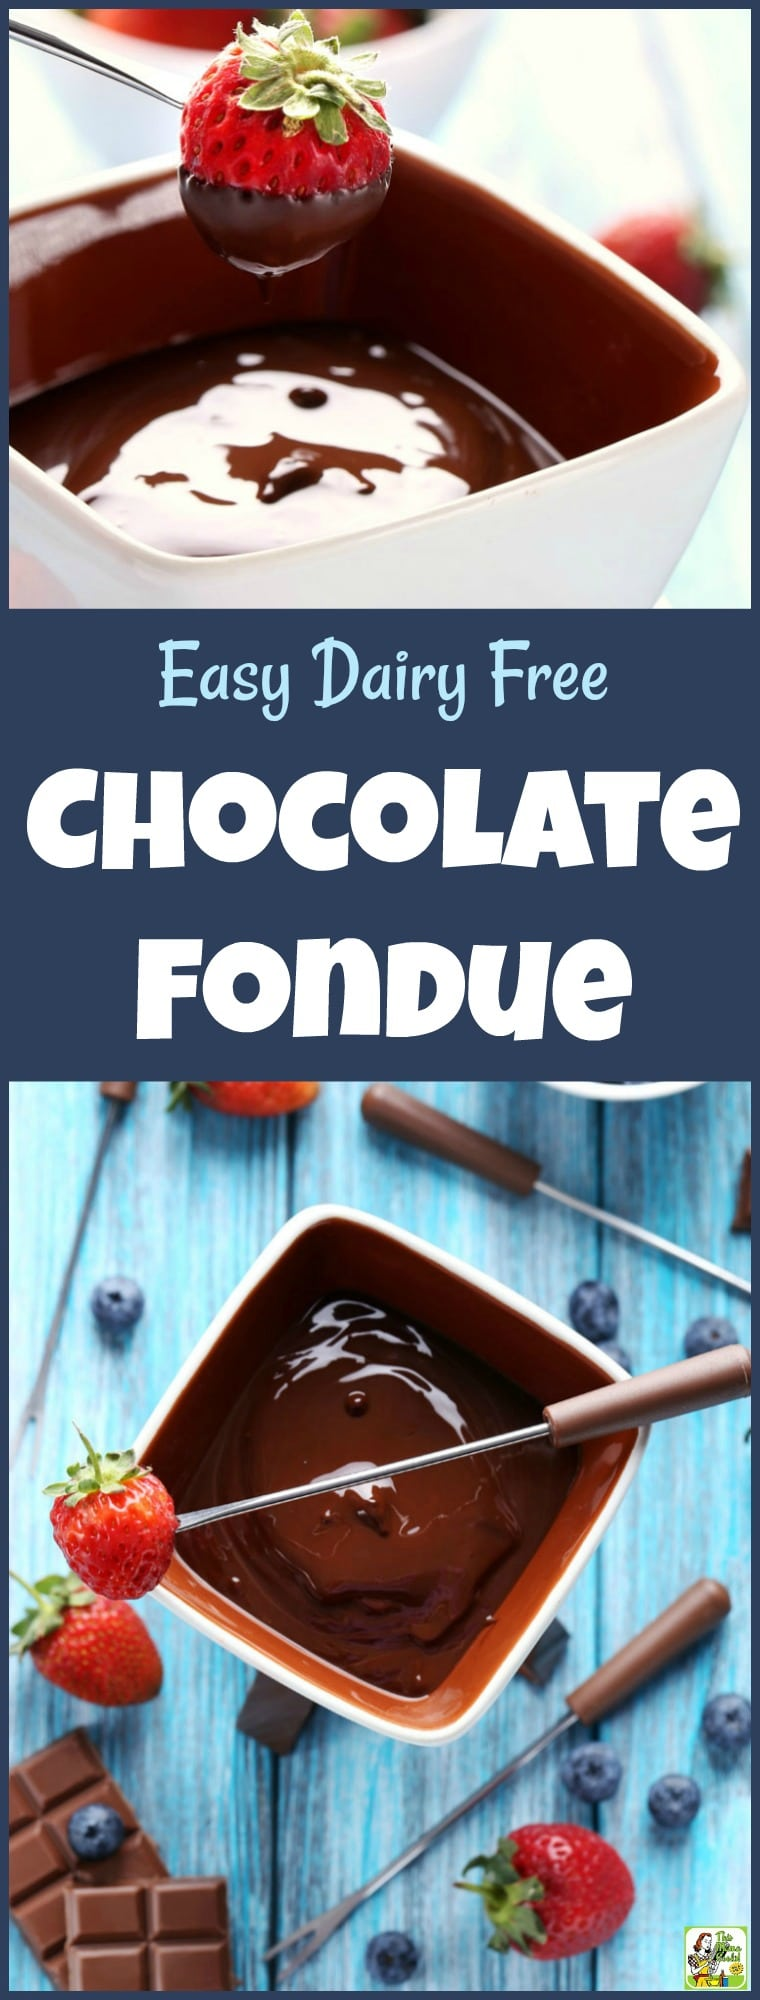 Love chocolate but can\'t have dairy? This Easy Dairy Free Chocolate Fondue is made with coconut cream and dairy free semi-sweet chocolate chips. Great for Valentine\'s Day, Mother\'s Day or a romantic evening at home! #recipe #easy #recipeoftheday #healthyrecipes #glutenfree #easyrecipes #desserts #dessertrecipes #dessertideas #chocolate #fondue #chocolatefondue #valentinesday #mothersday #chocolaterecipes